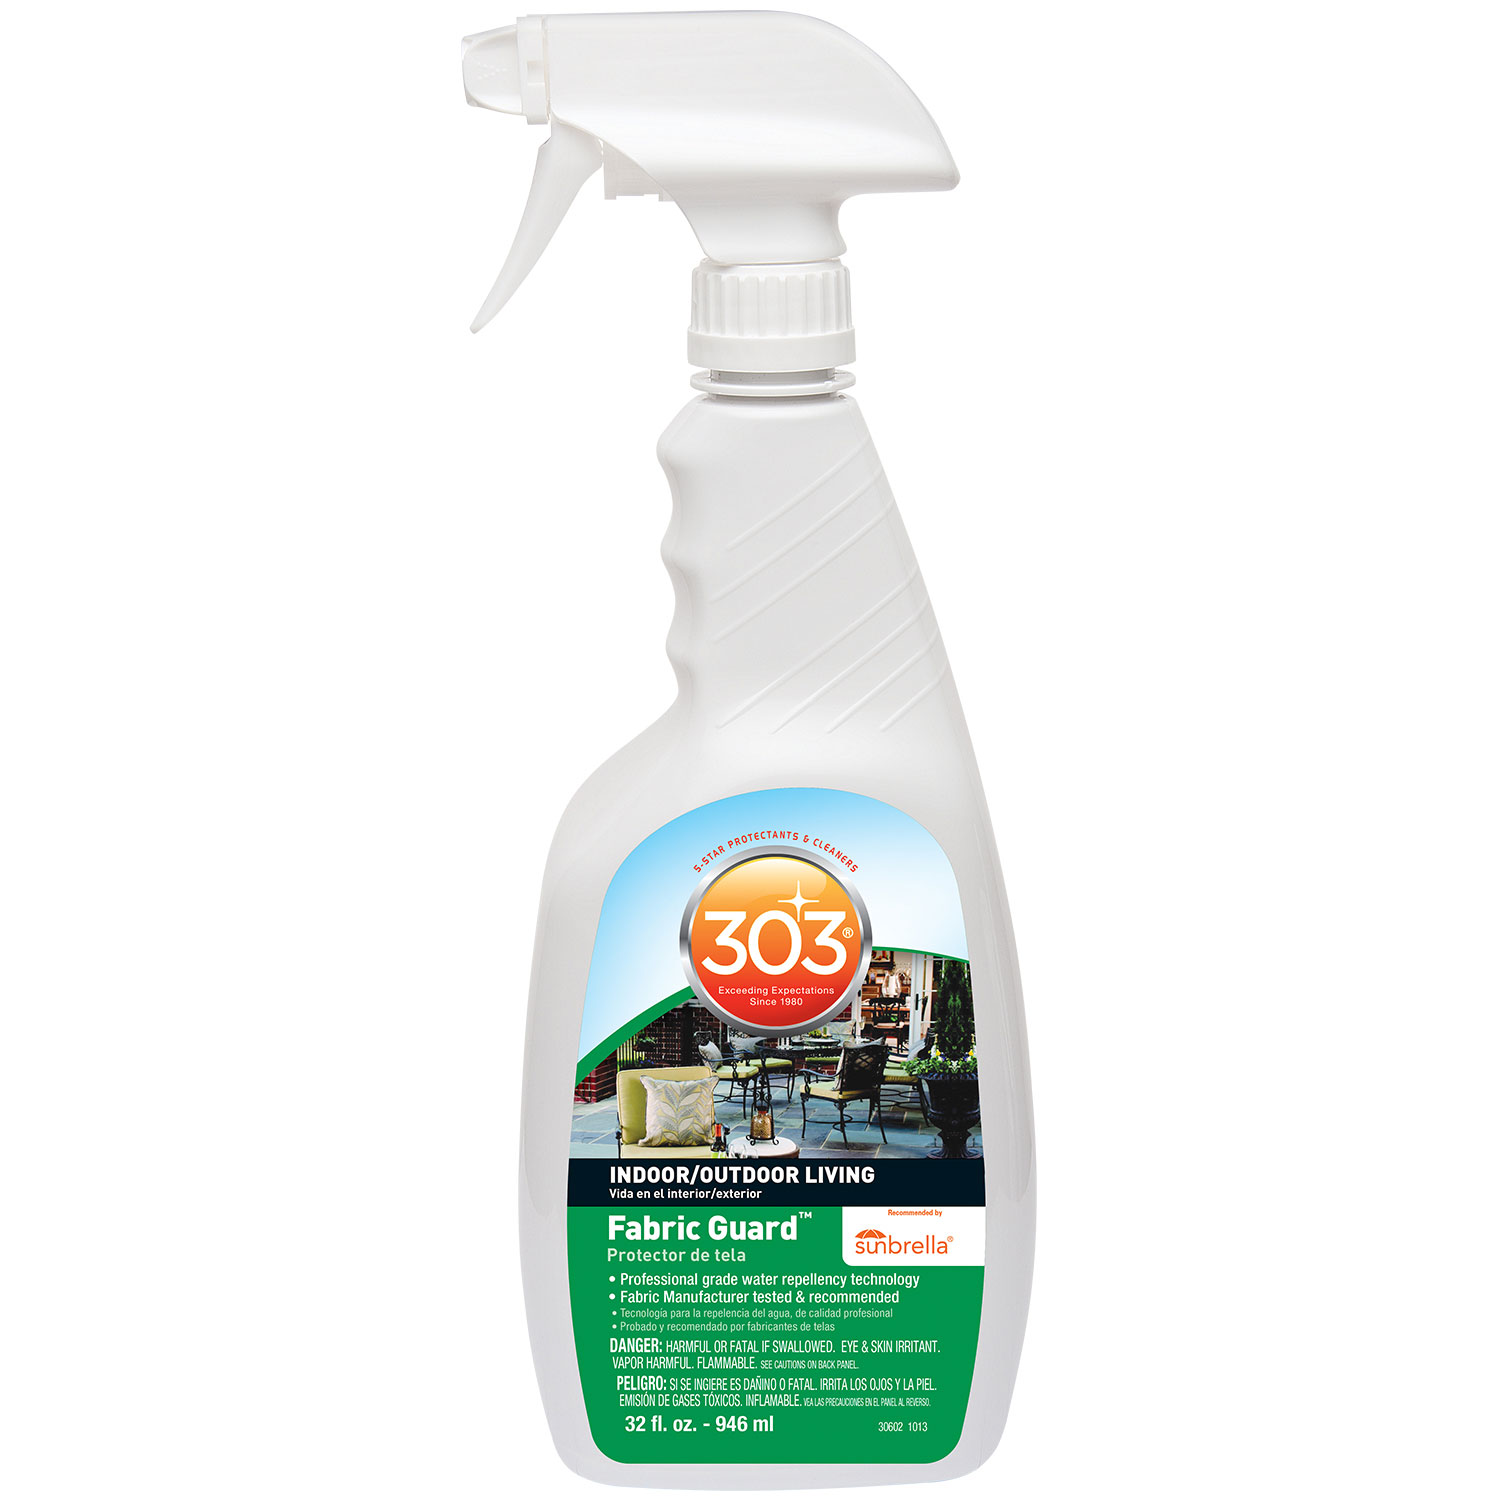 Water Repelant, 303, Fabric Guard, 32oz Spray Bottle